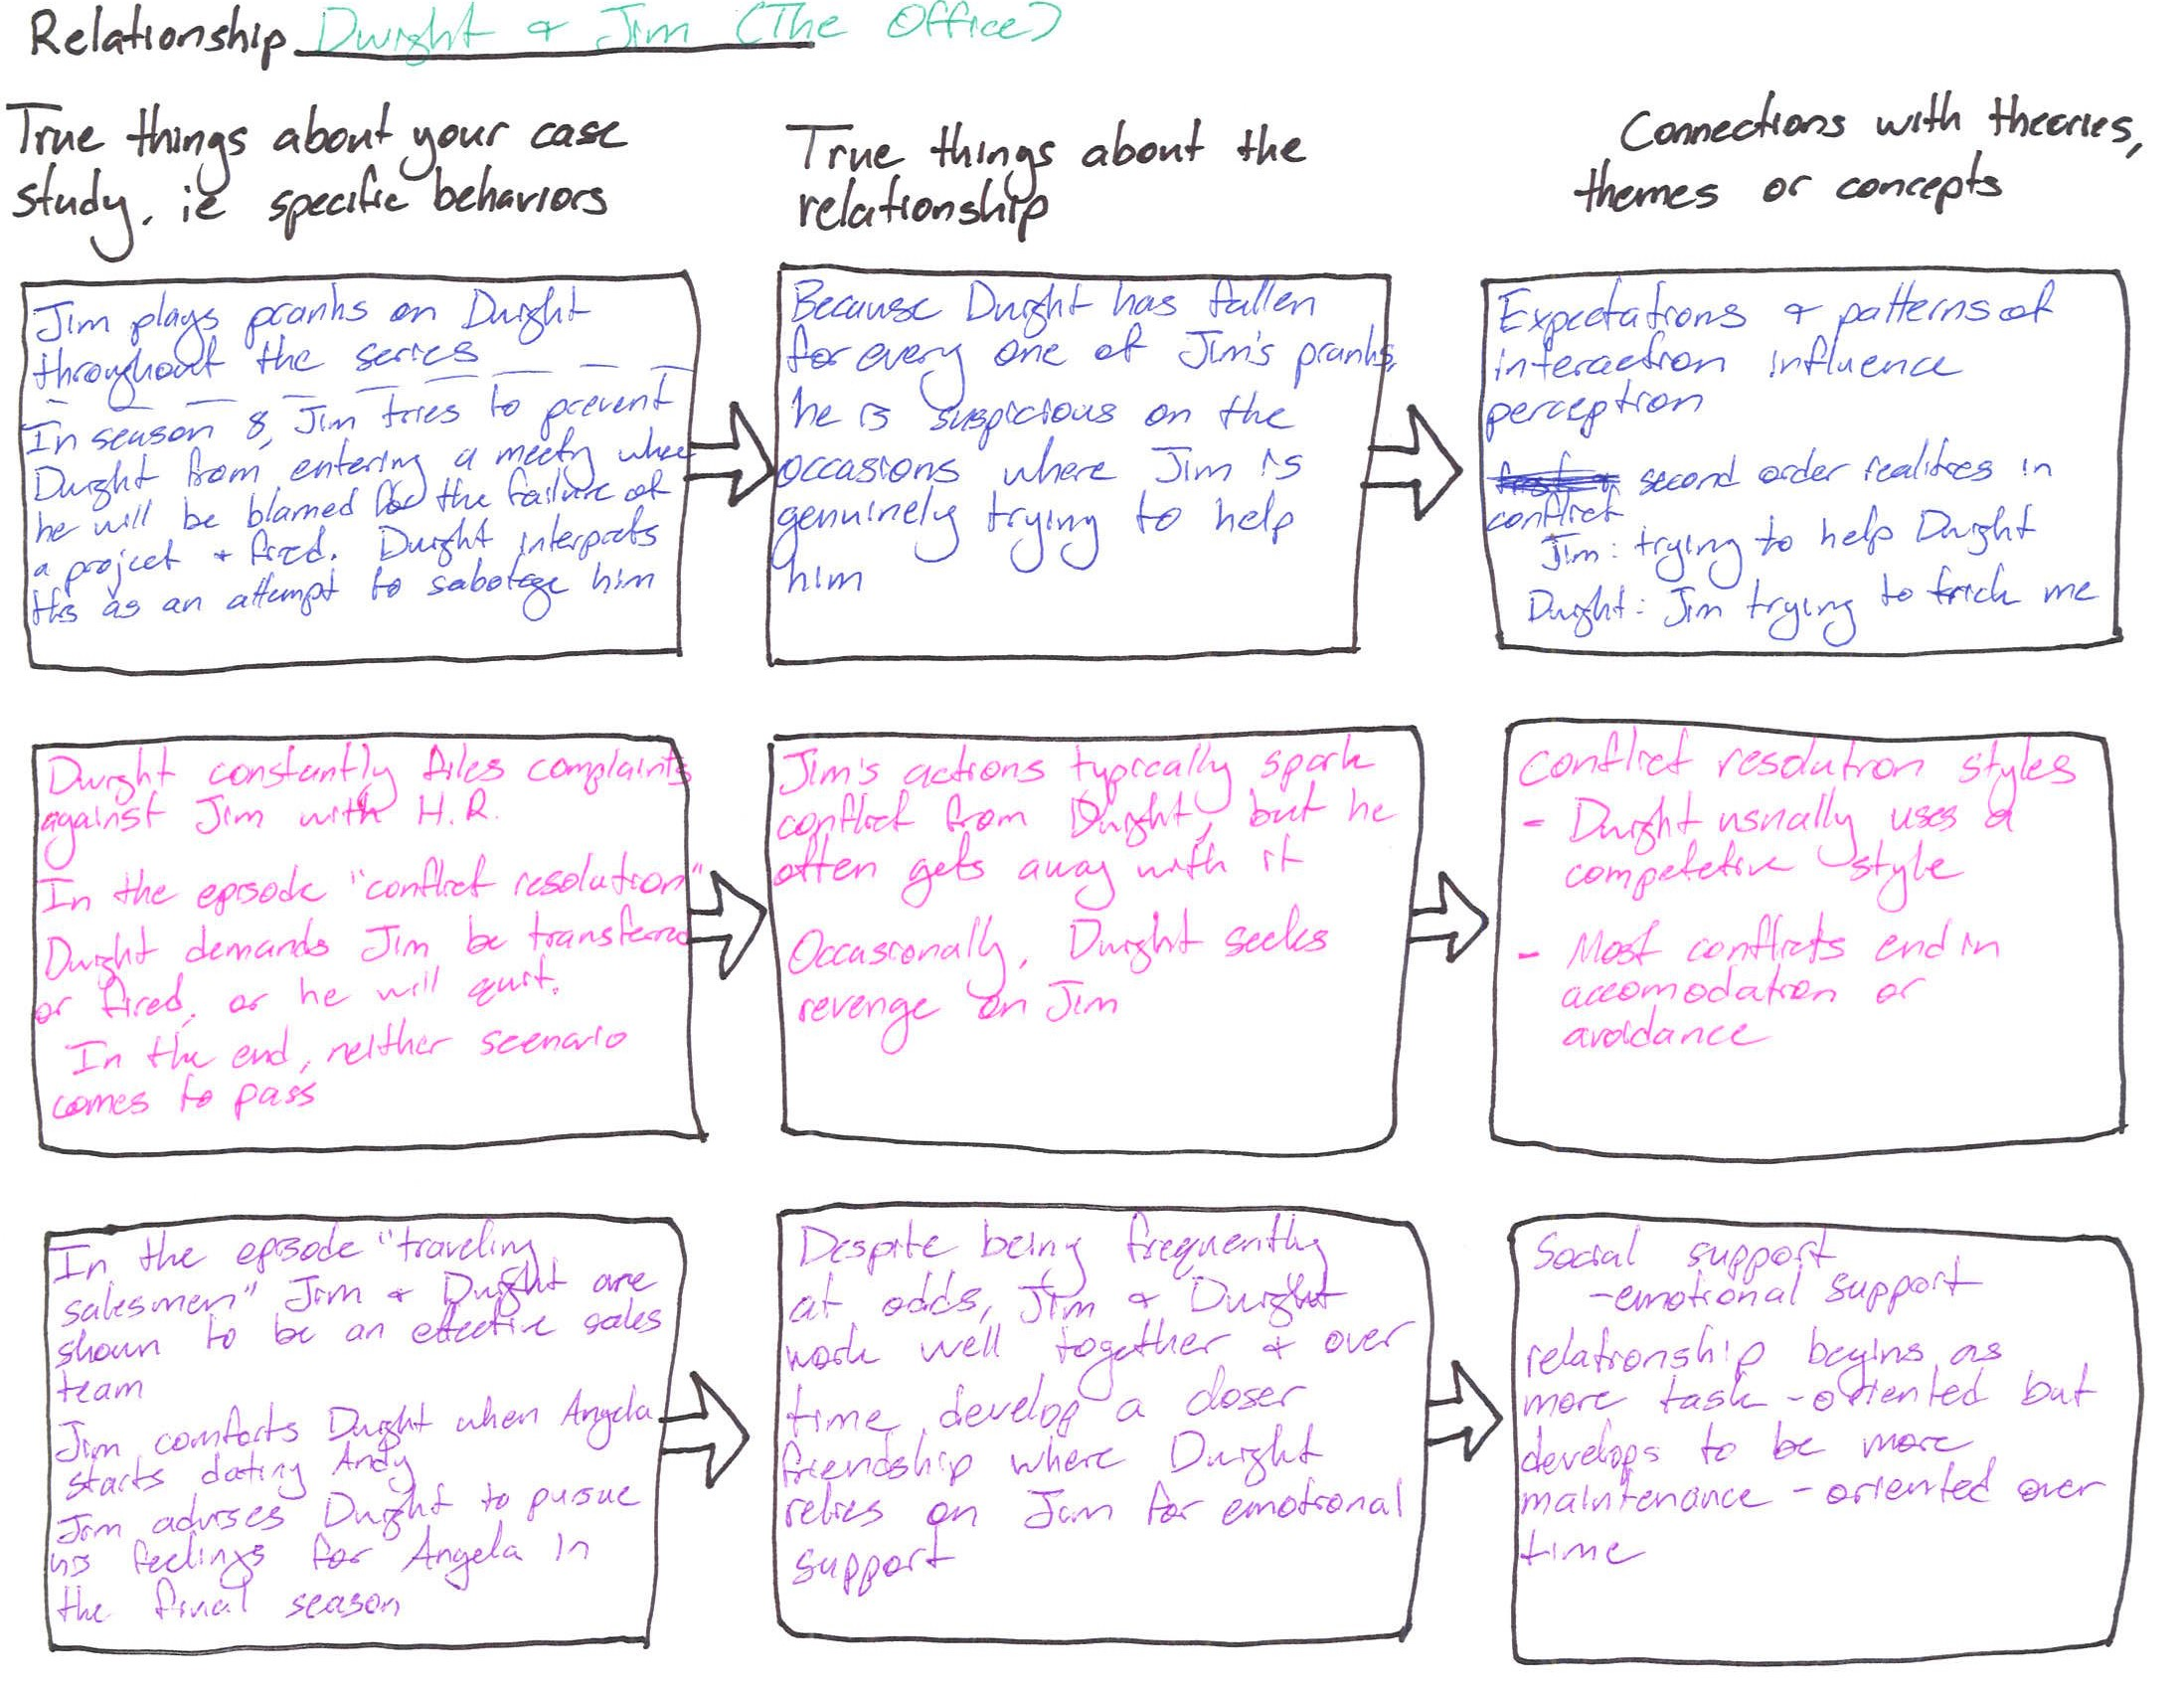 communication style case study 3 essay Guidelines for writing a case study analysis a case study analysis requires you to investigate a business problem, examine the alternative solutions, and propose the most effective solution using supporting evidence.